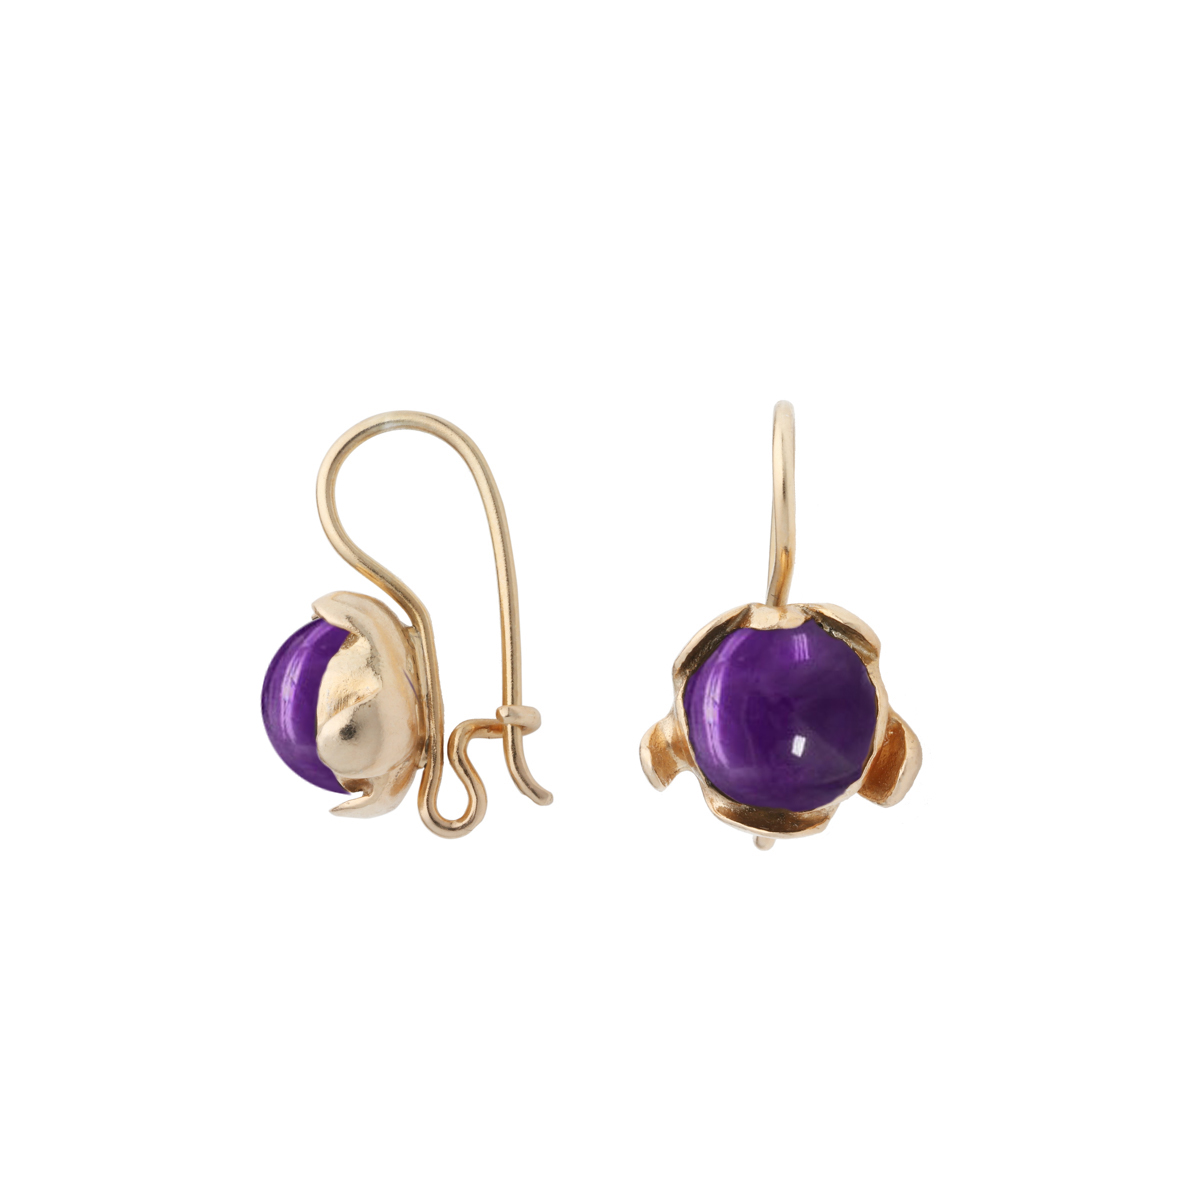 BLOSSOM hook earrings with Amethyst